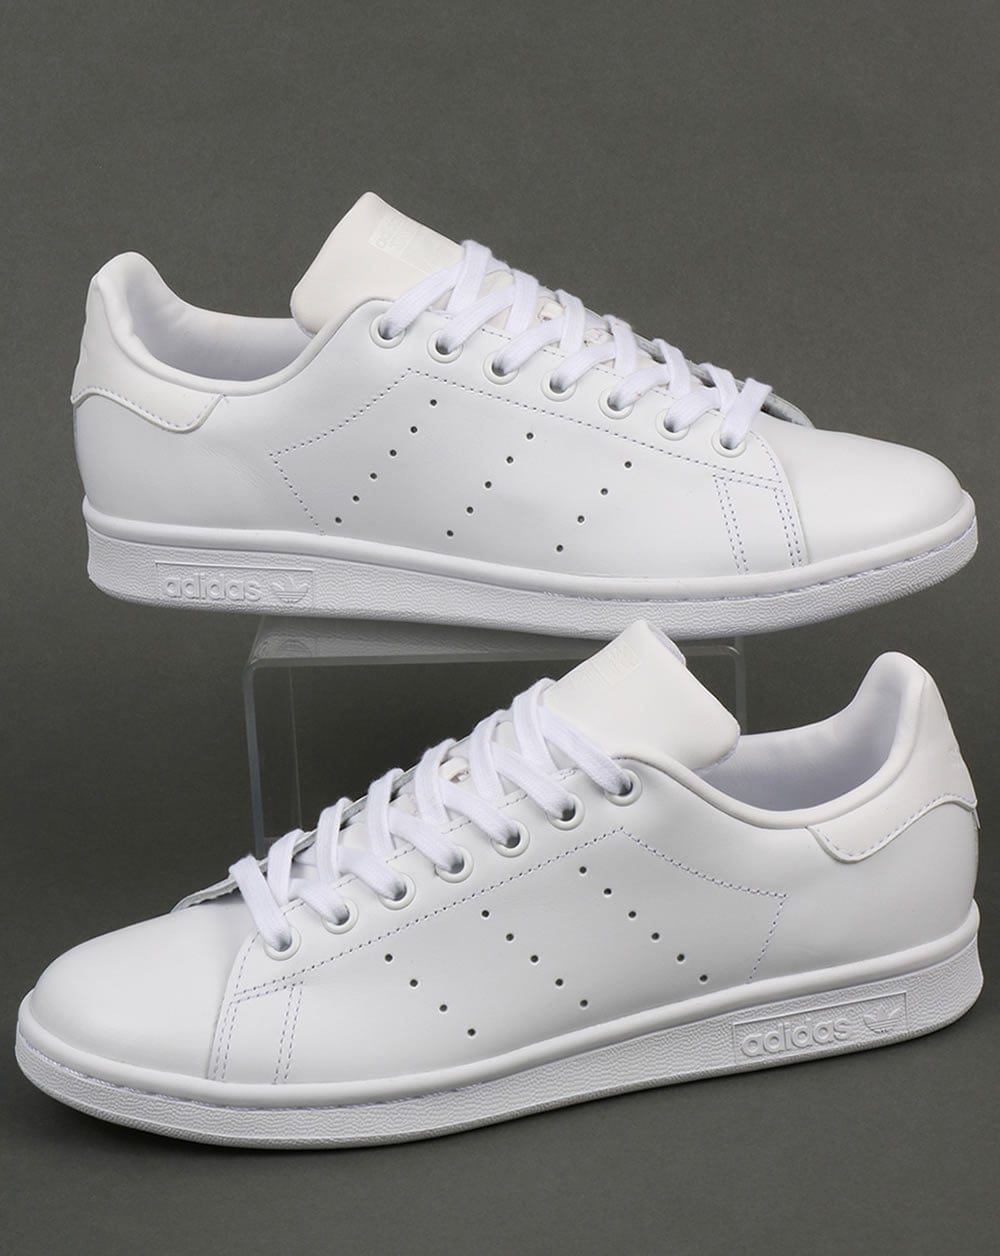 9deeb0dc4b9 adidas Trainers Adidas Stan Smith Trainers Triple White